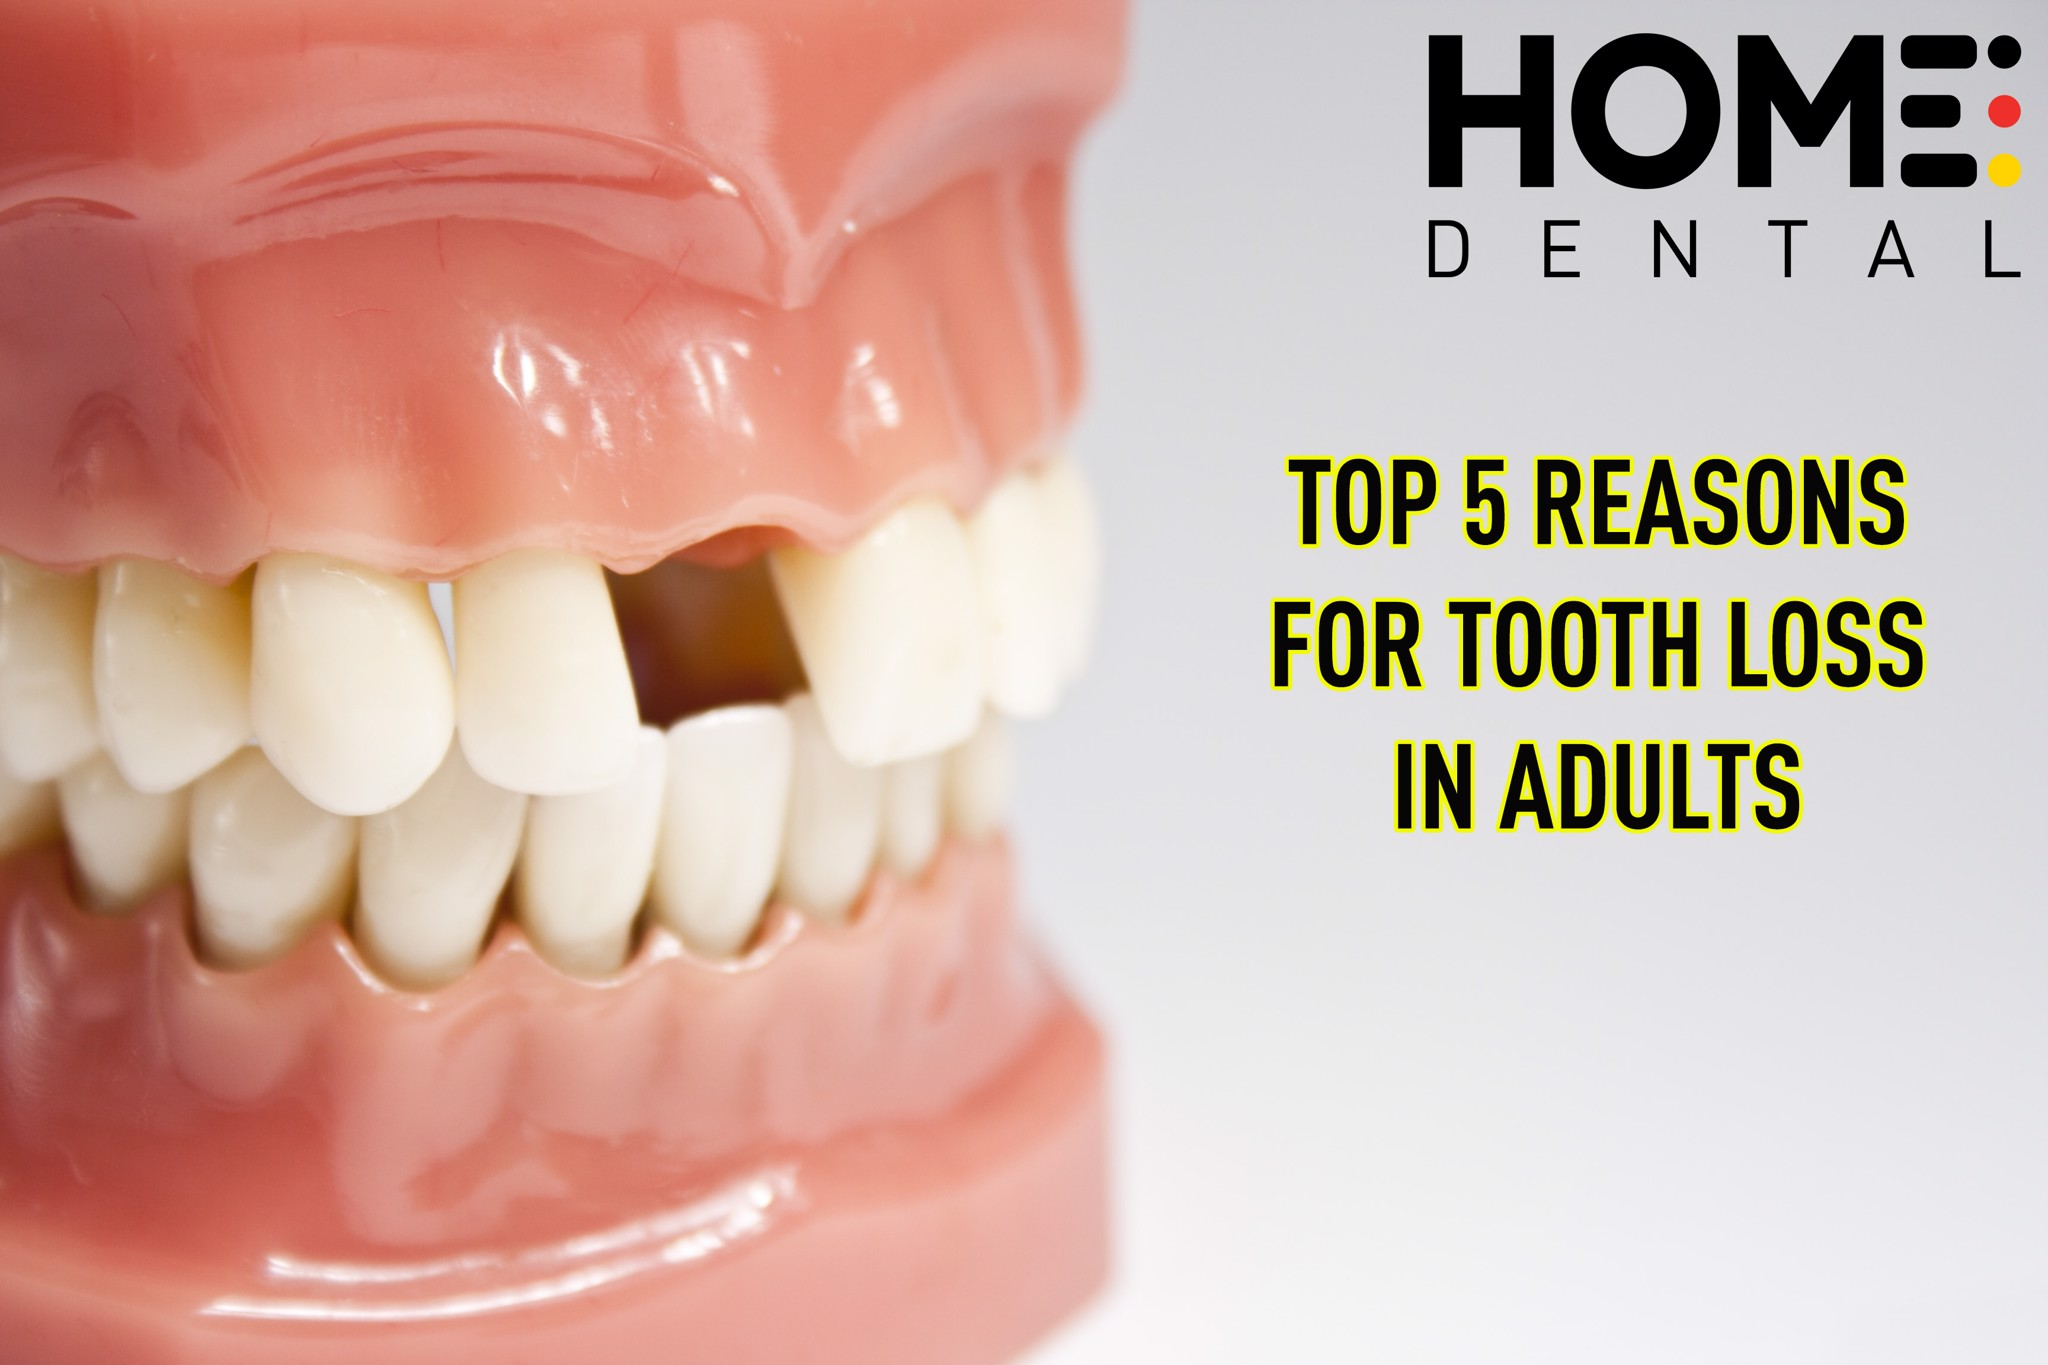 TOP 5 REASONS FOR TOOTH LOSS IN ADULTS